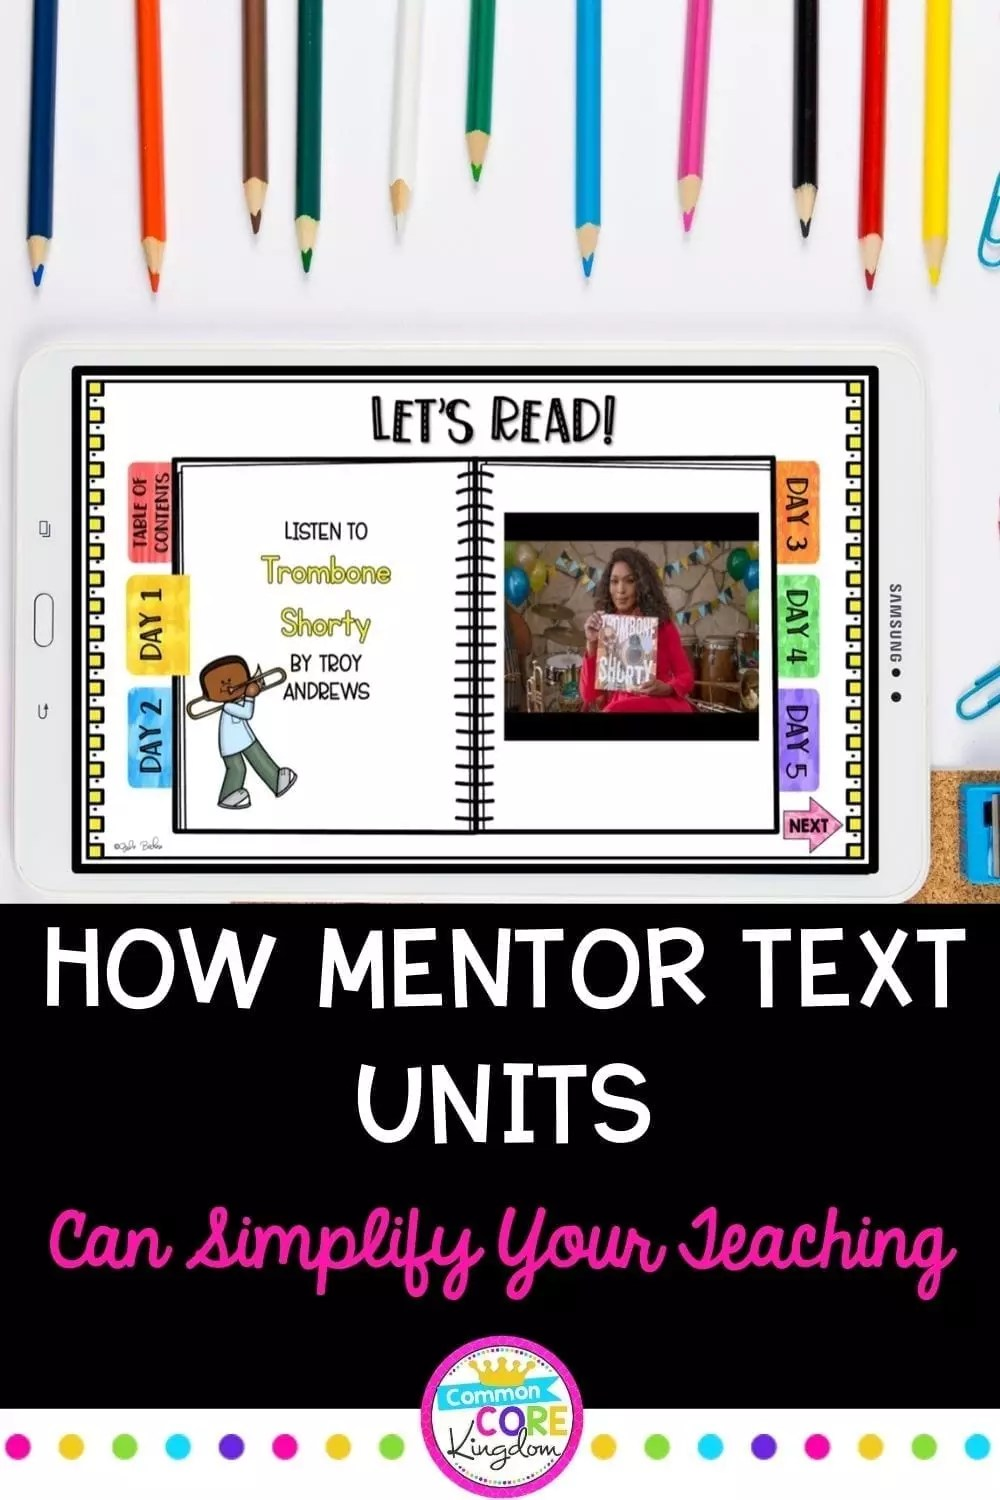 Using mentor texts units for teaching blog post cover showing book units